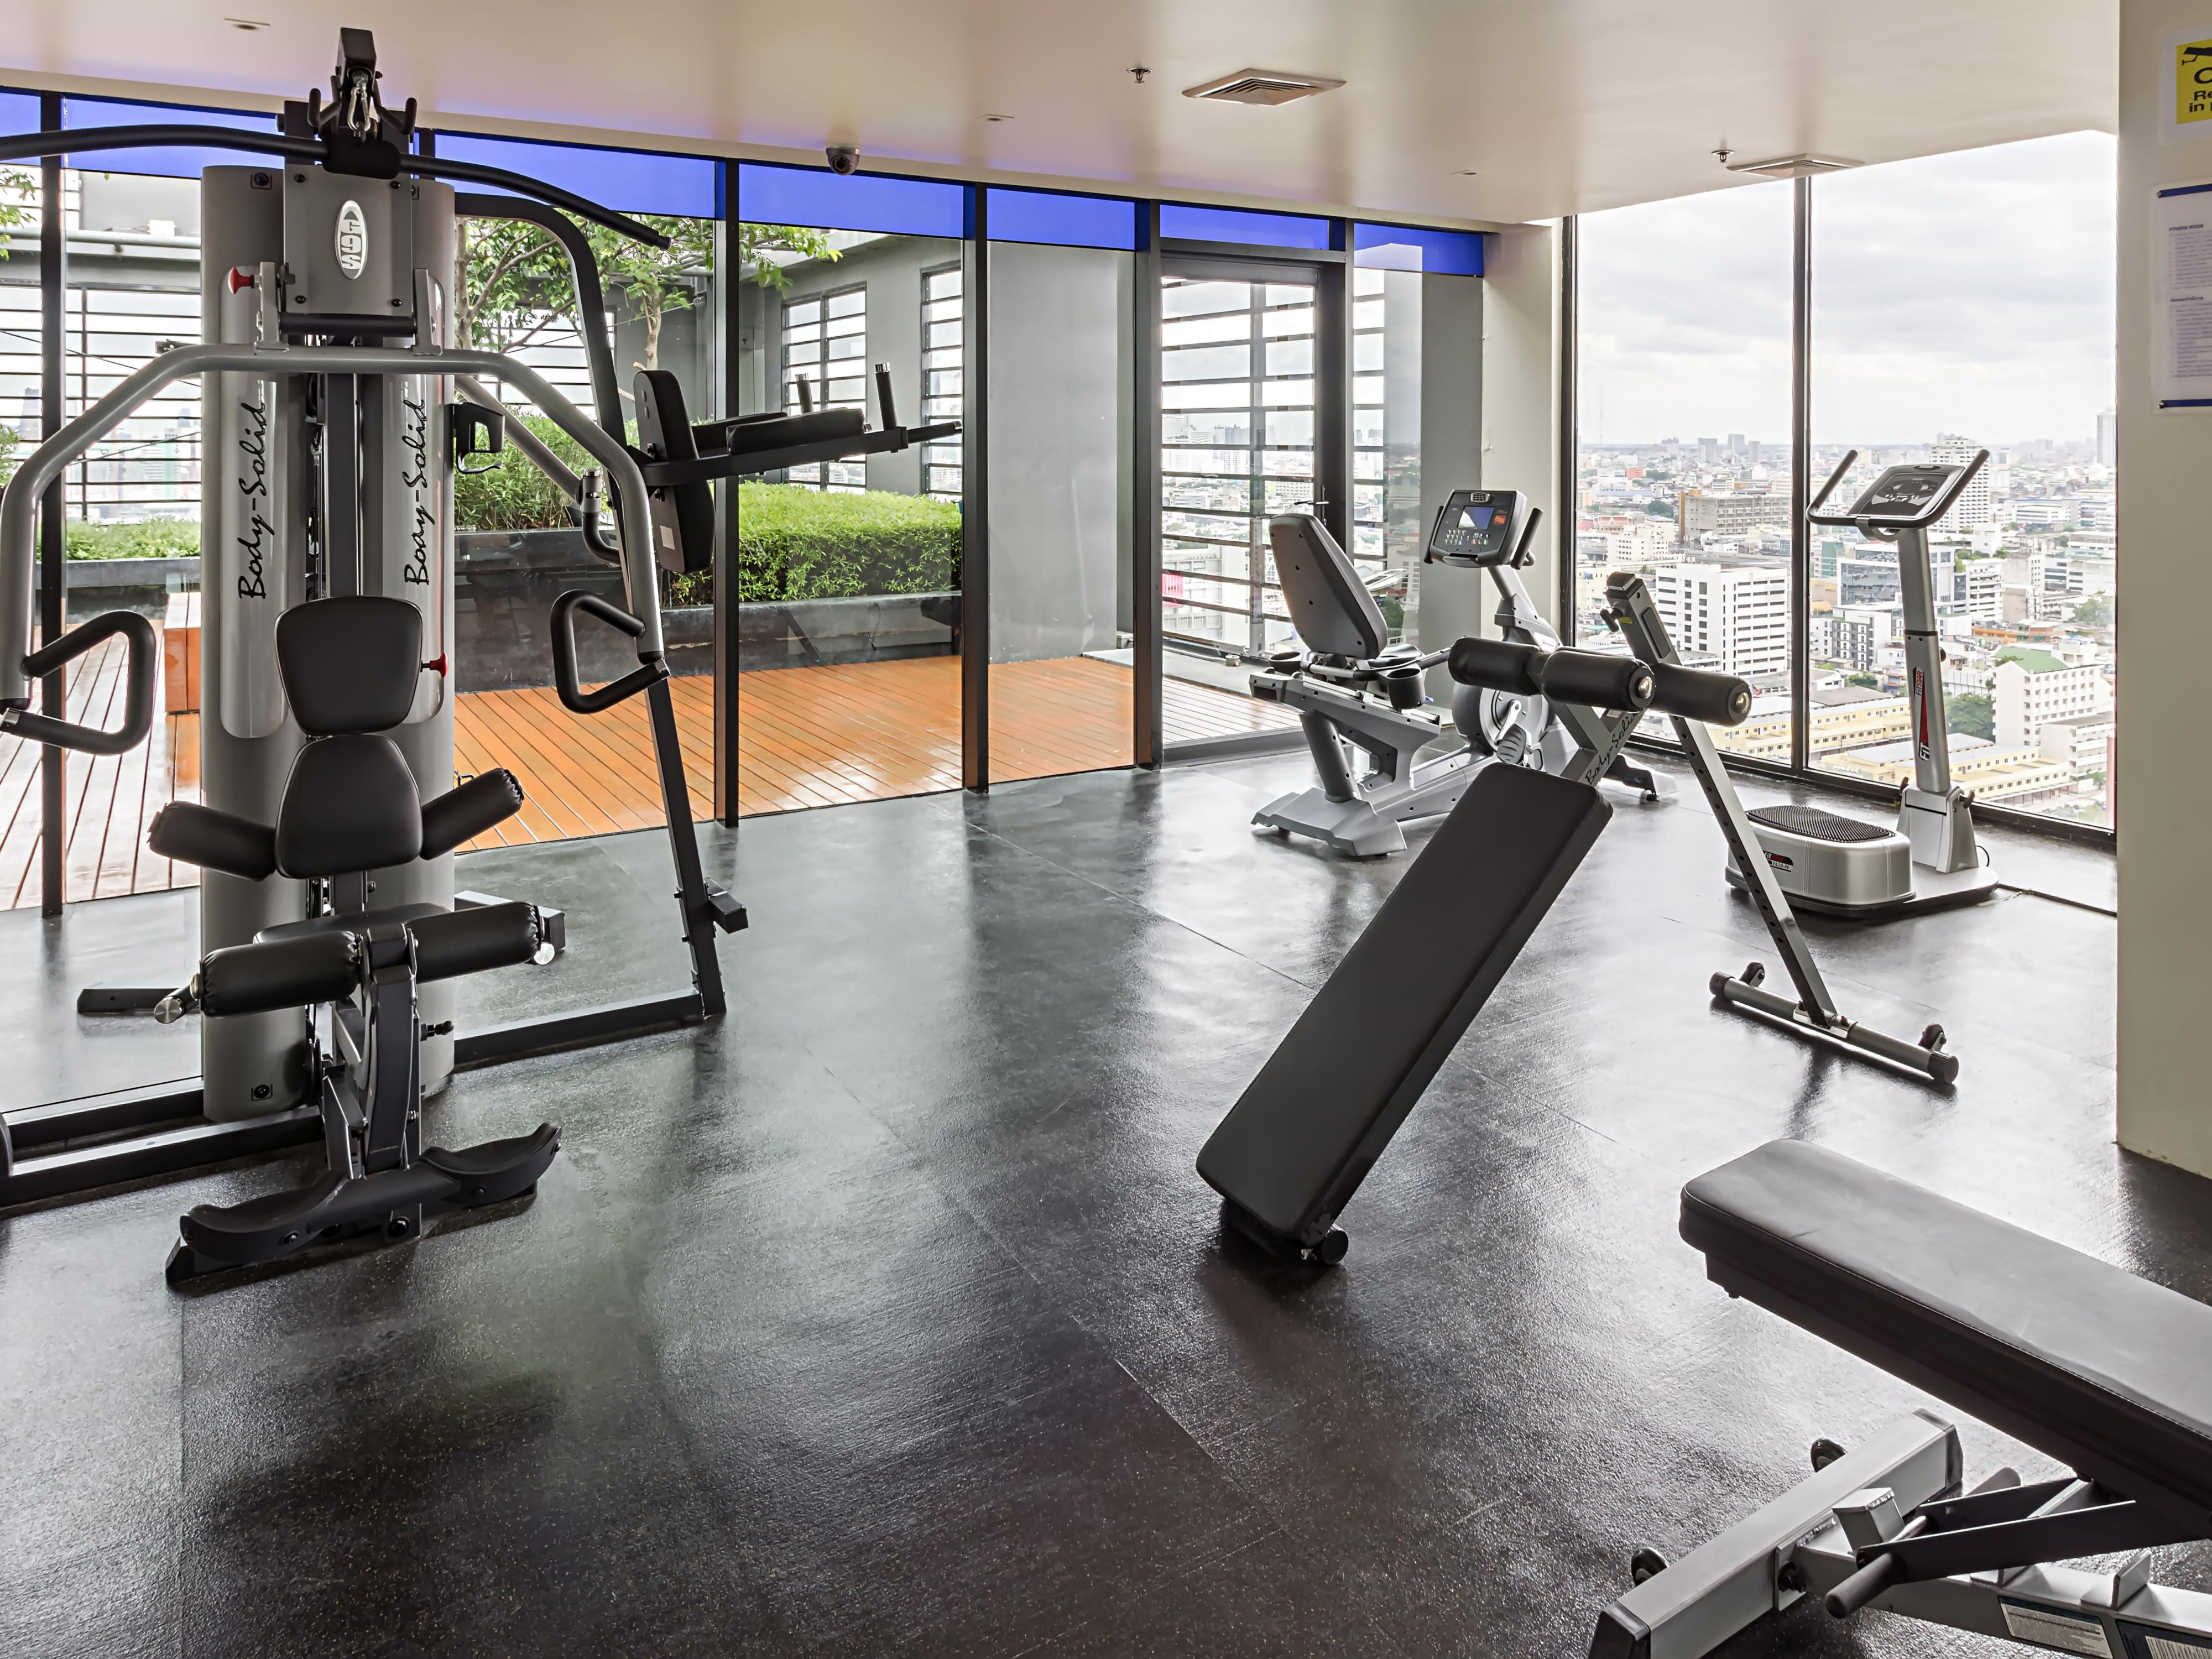 24-hour Fitness Center at Rooftop level with Bangkok city view